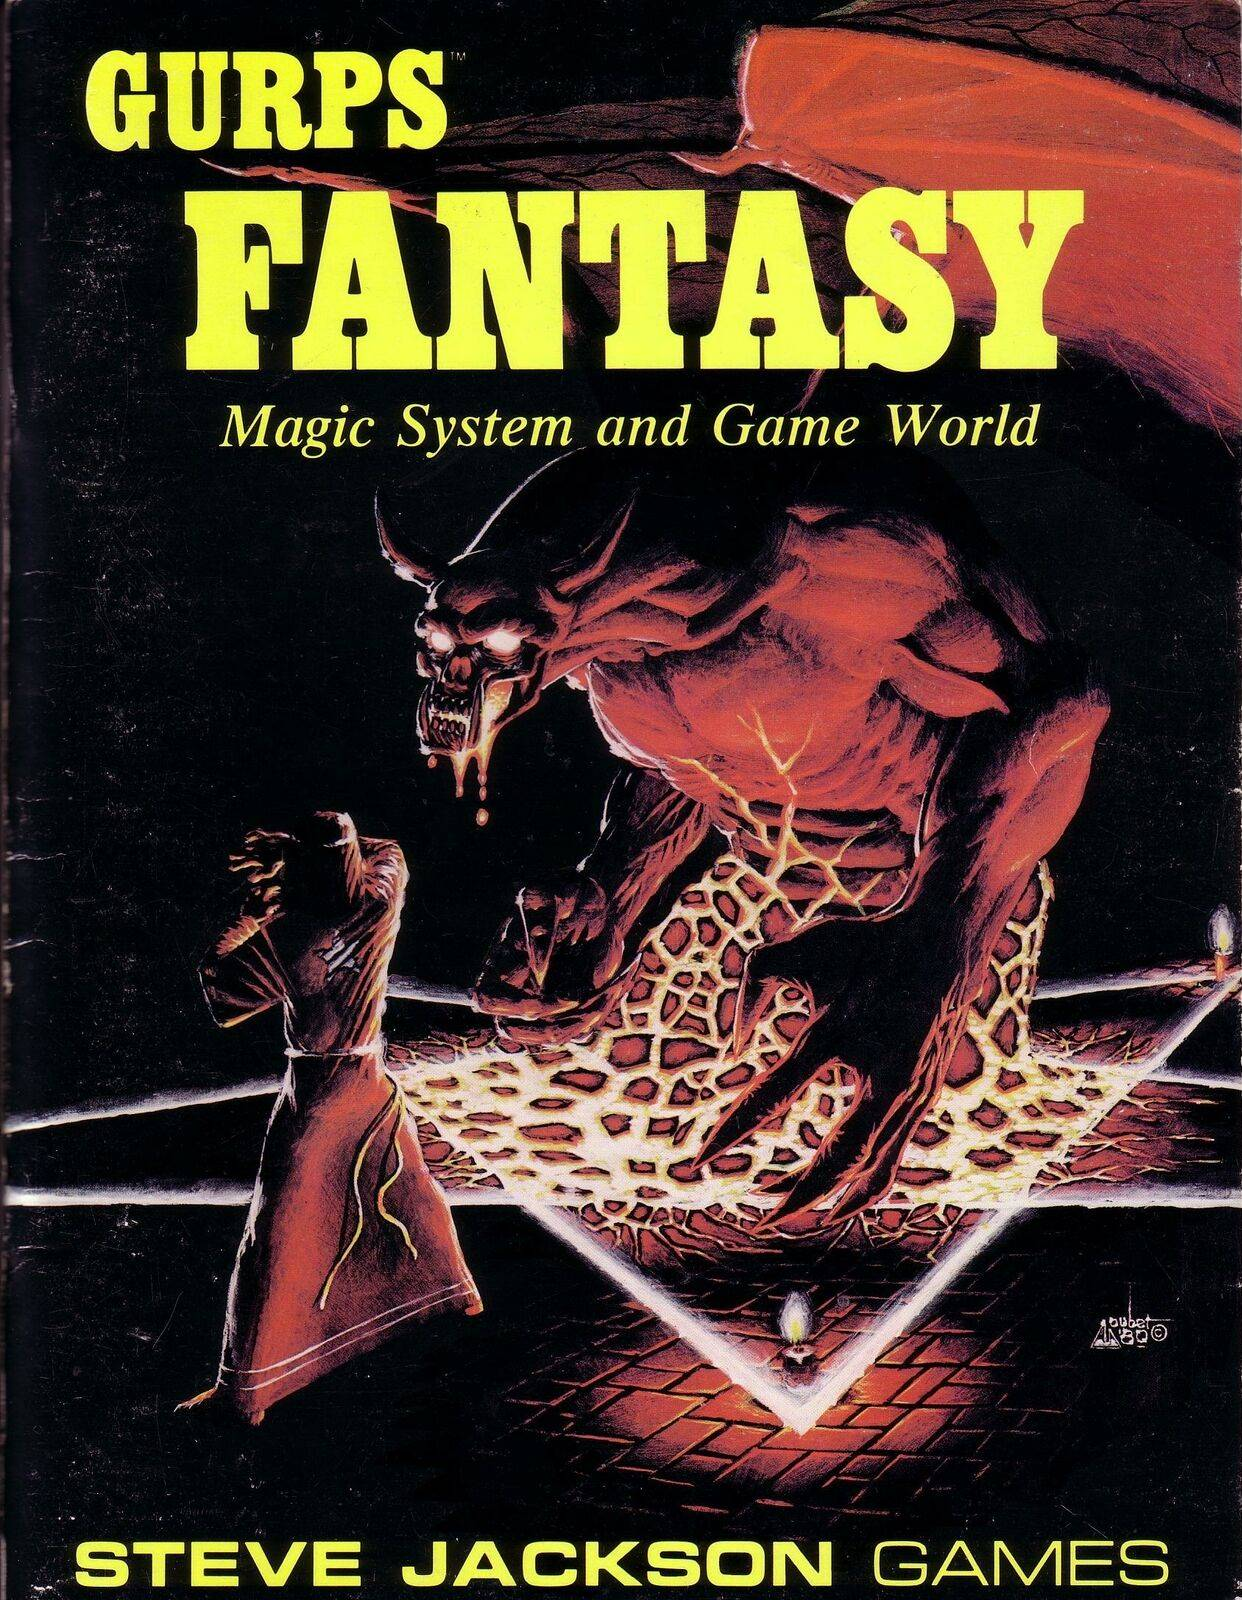 GURPS Fantasy, First Edition